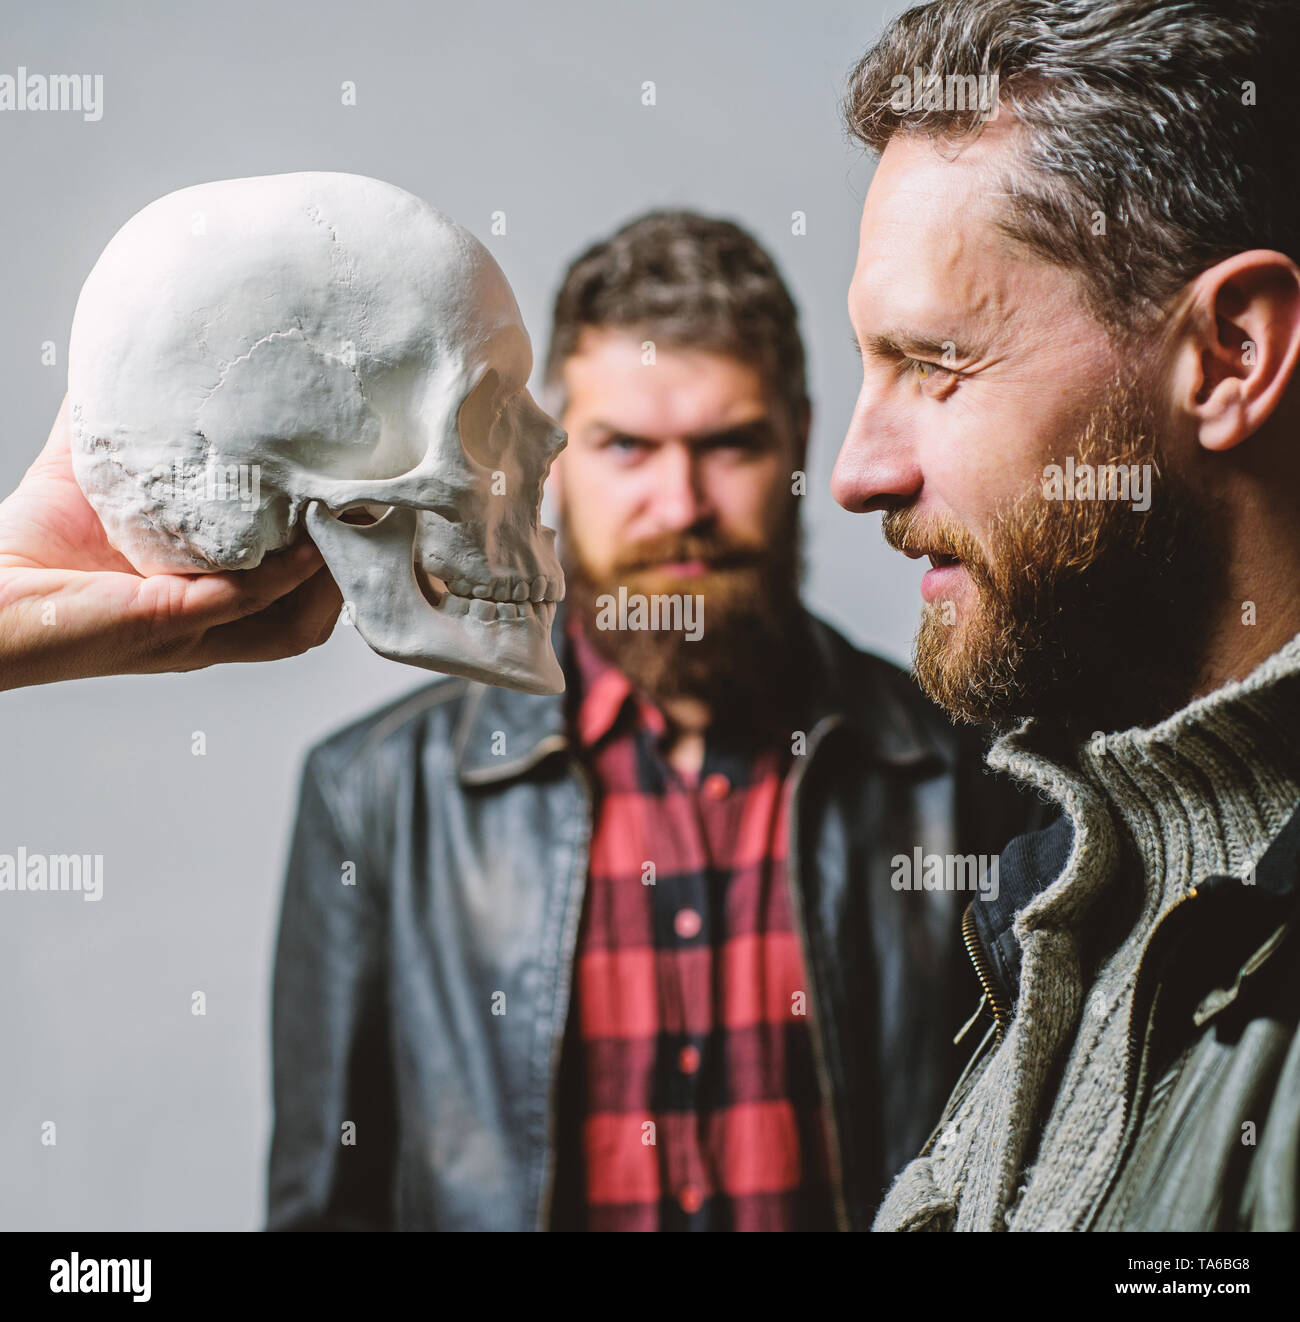 Focused on breaking fear. Psychology concept. Human fears and courage. Looking deep into eyes of your fear. Man brutal bearded hipster looking at skull symbol of death. Overcome your fears. Be brave. - Stock Image